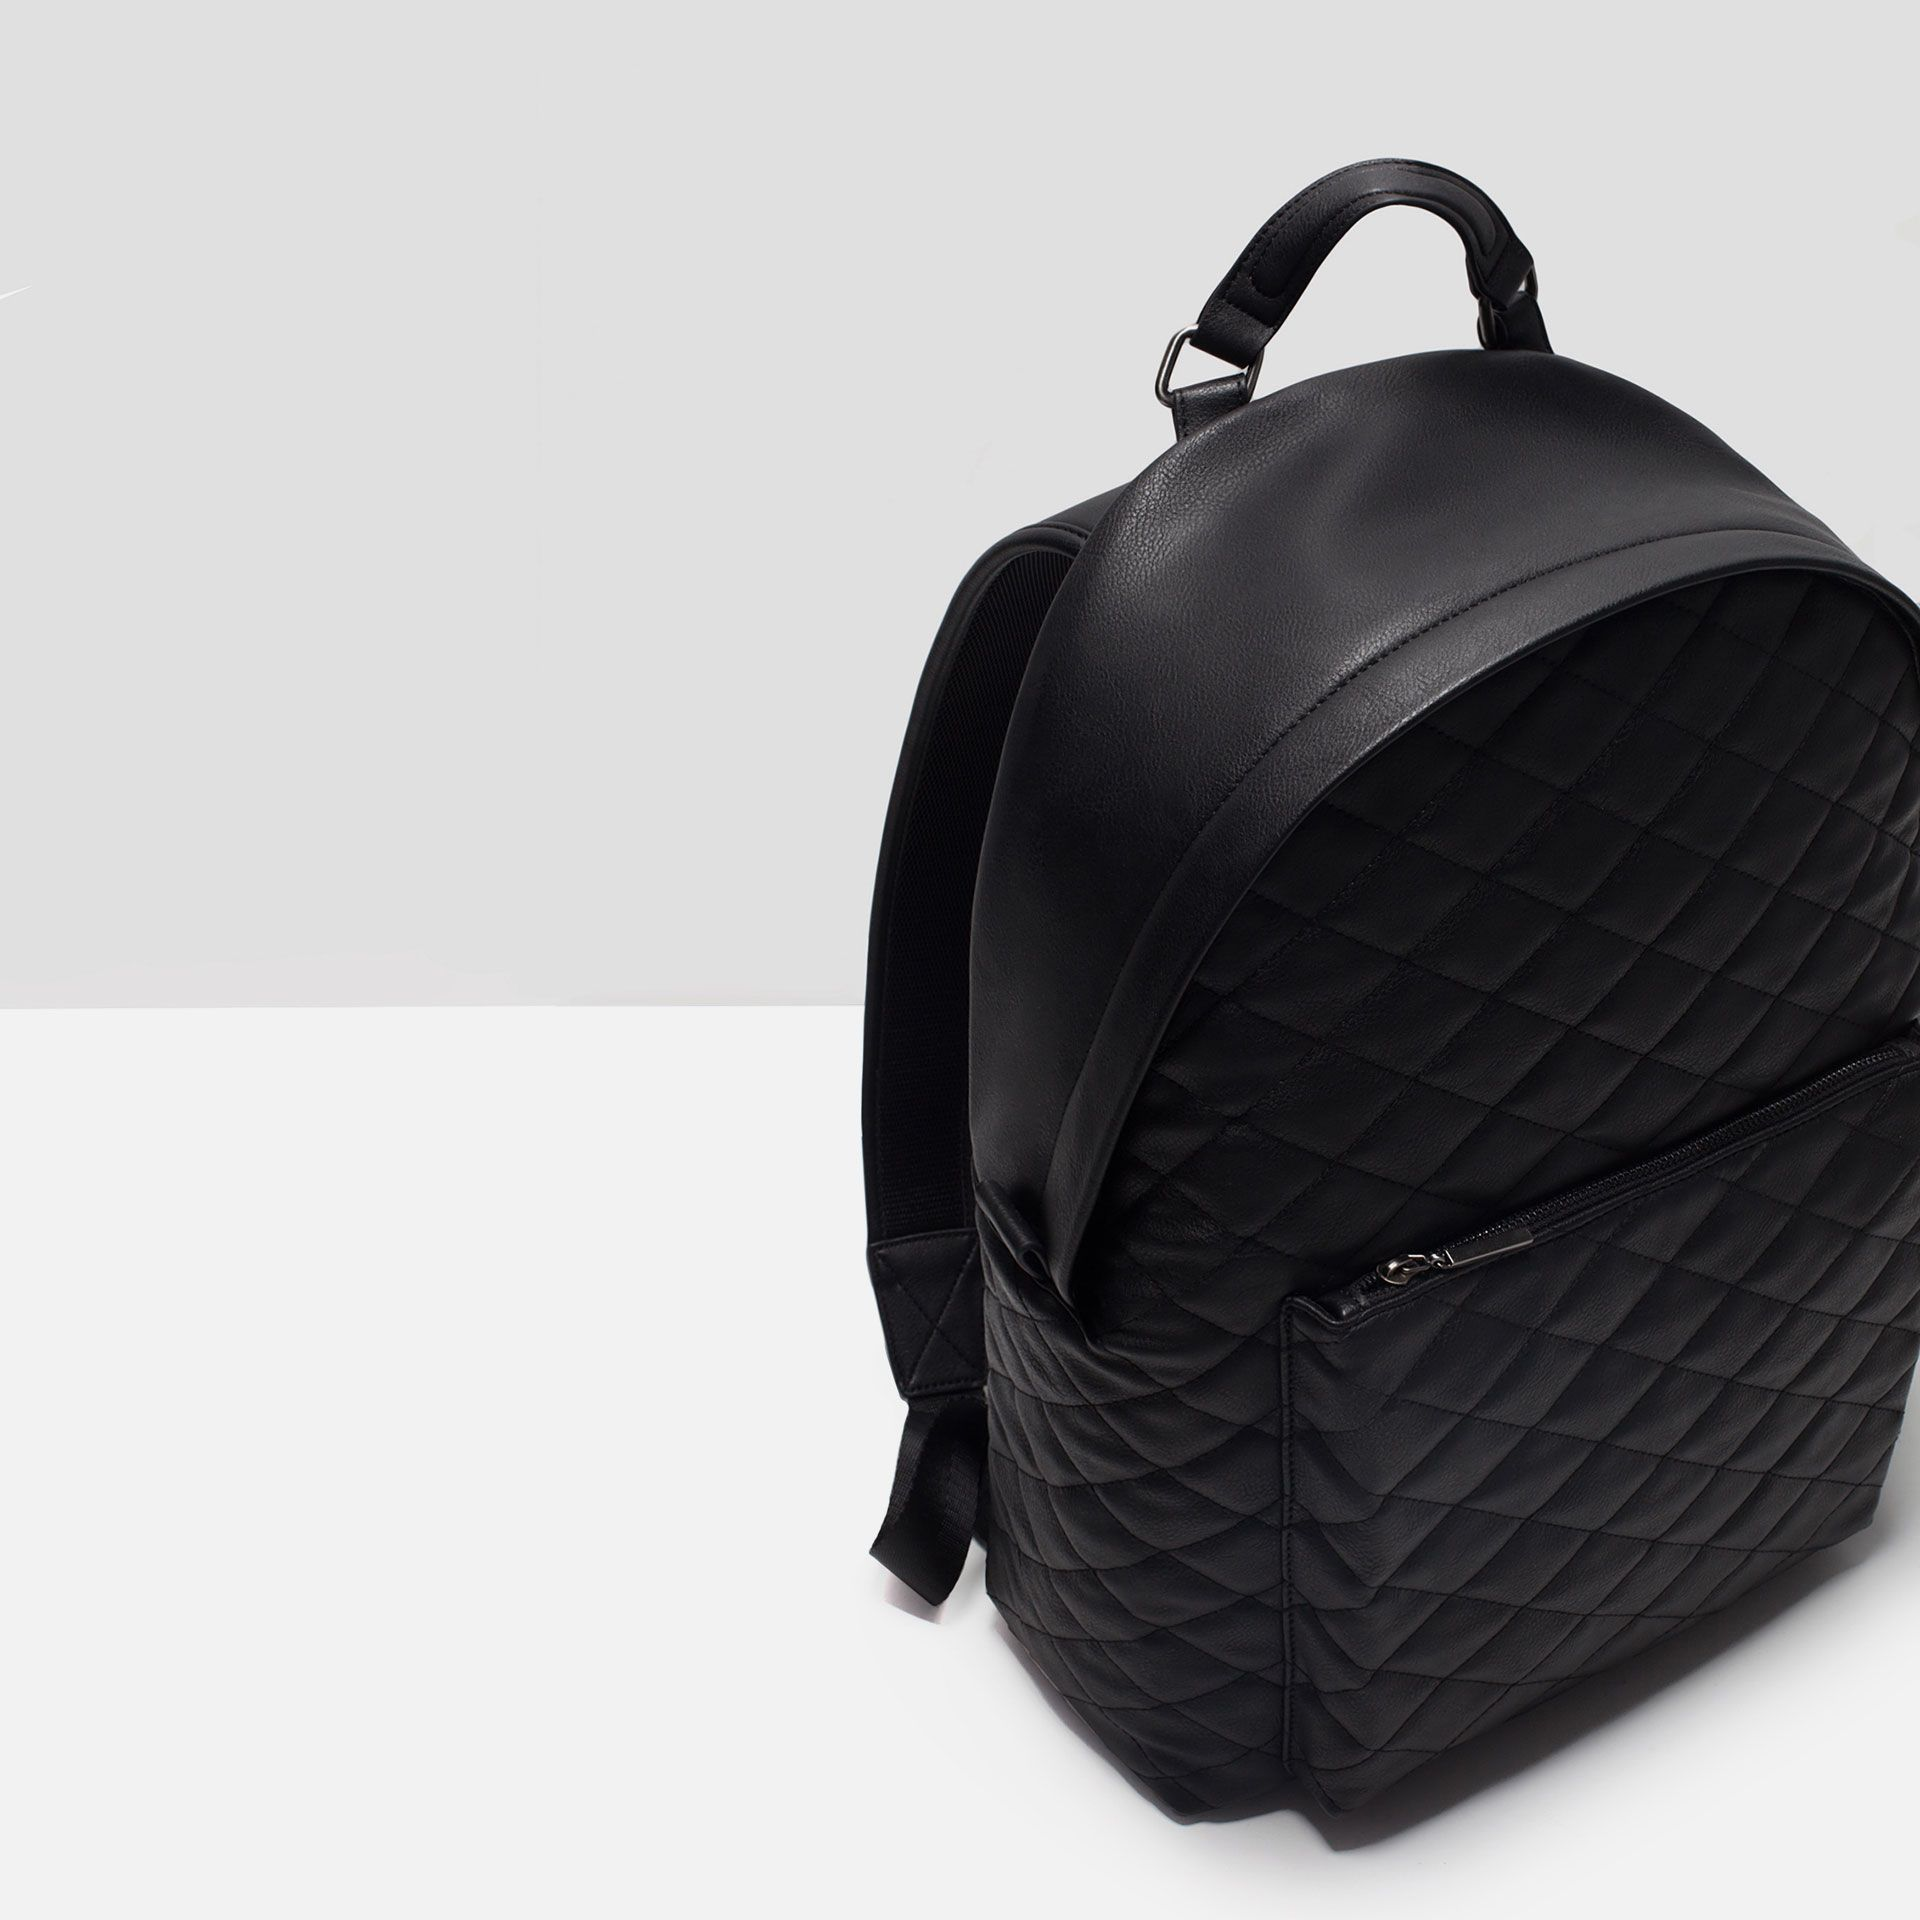 zara mens backpack quilted - Google Search | MEN'S FASHION STYLING ... : quilted rucksack zara - Adamdwight.com